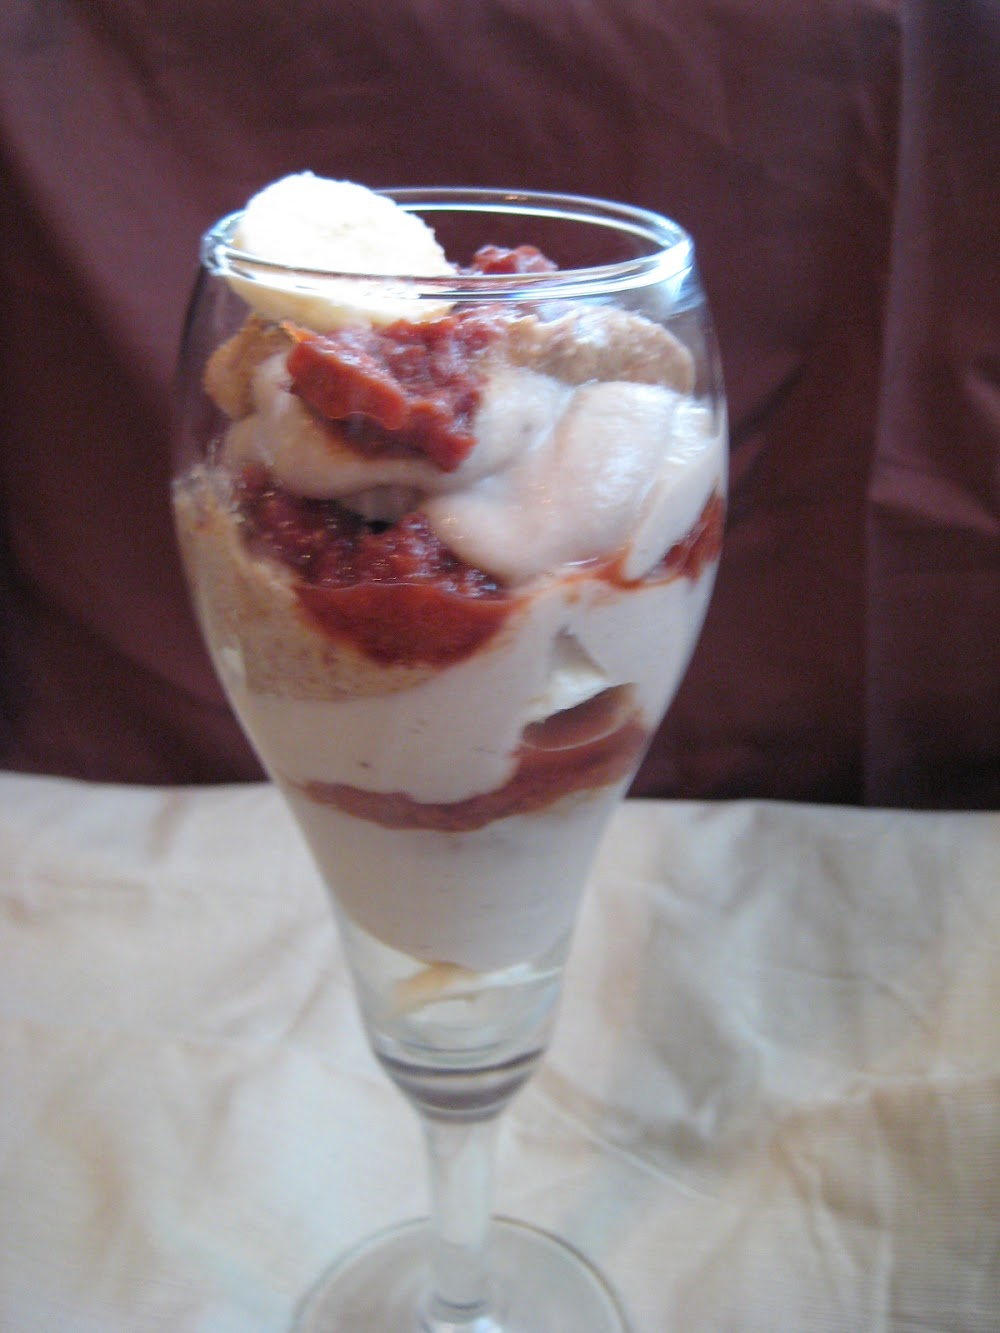 Elvis' Banana Nut Butter and Jam Parfait